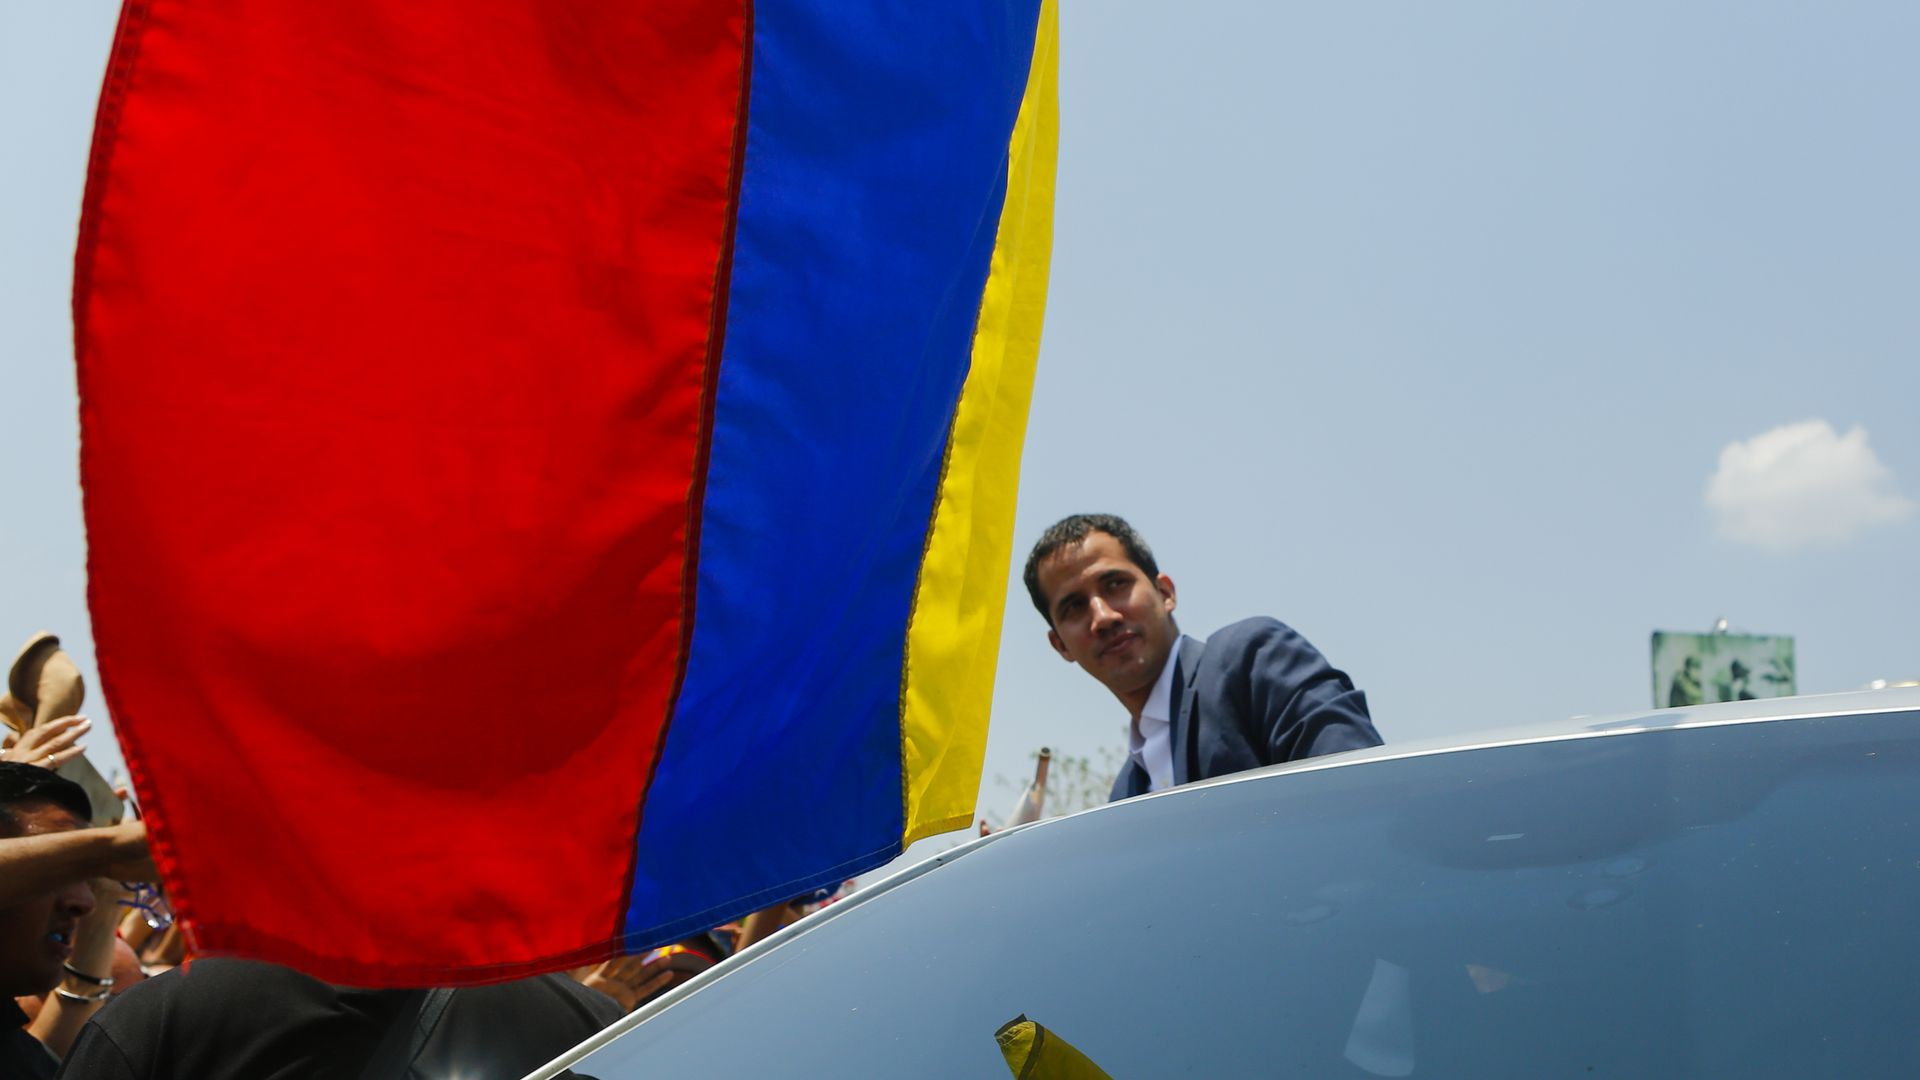 Juan Guaido stands next to a car with the Venezuelan flag hanging above him.